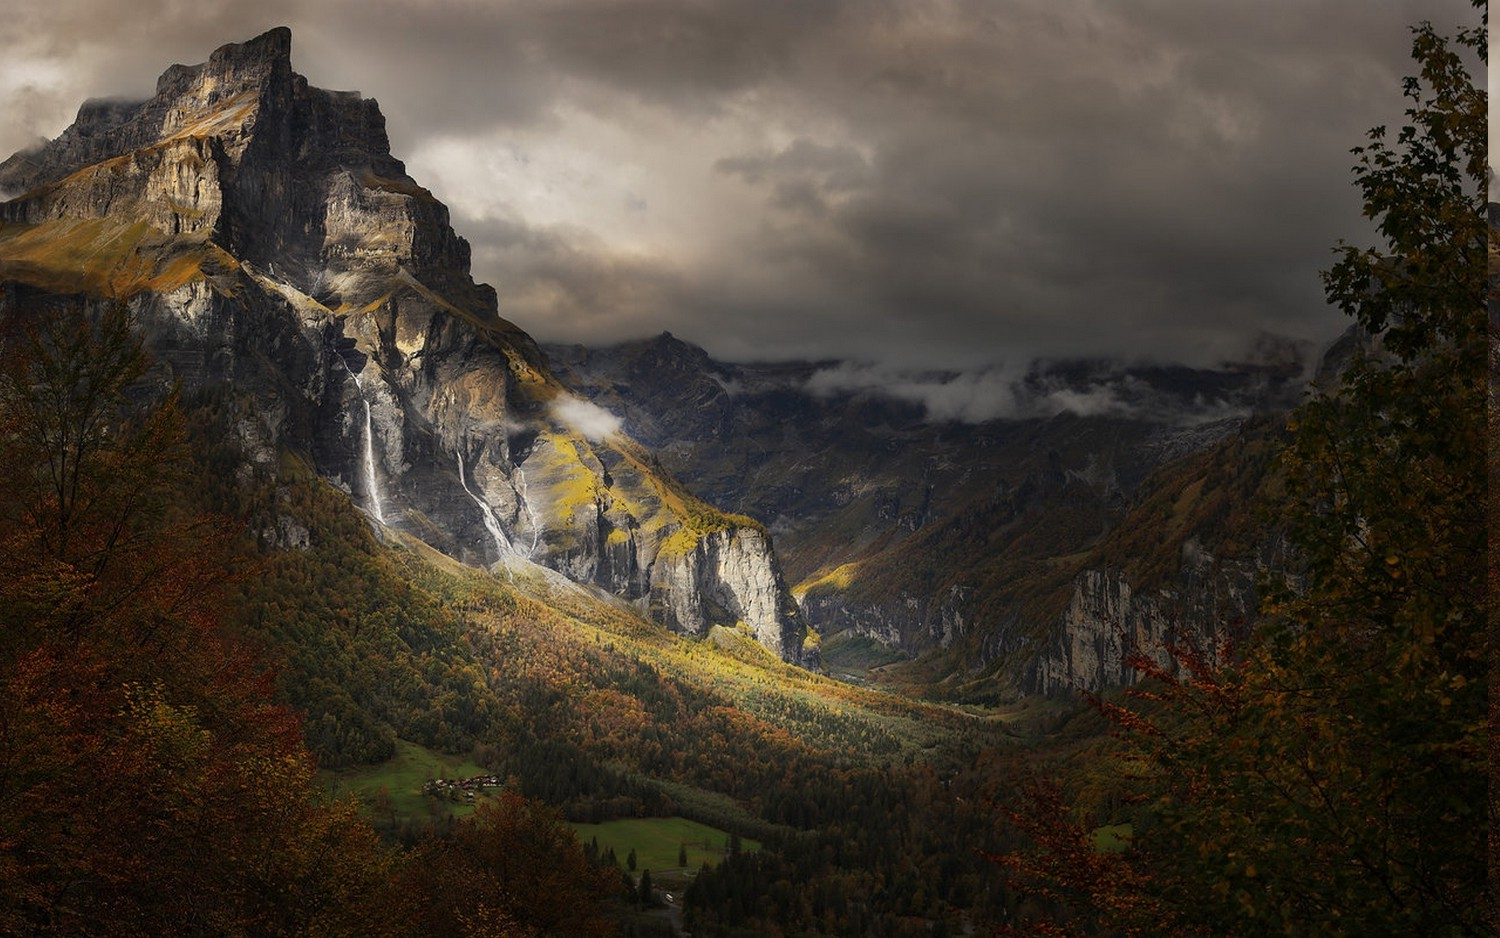 Fall Leaves Hd Desktop Wallpaper Nature Landscape Mountain Fall Forest France Alps